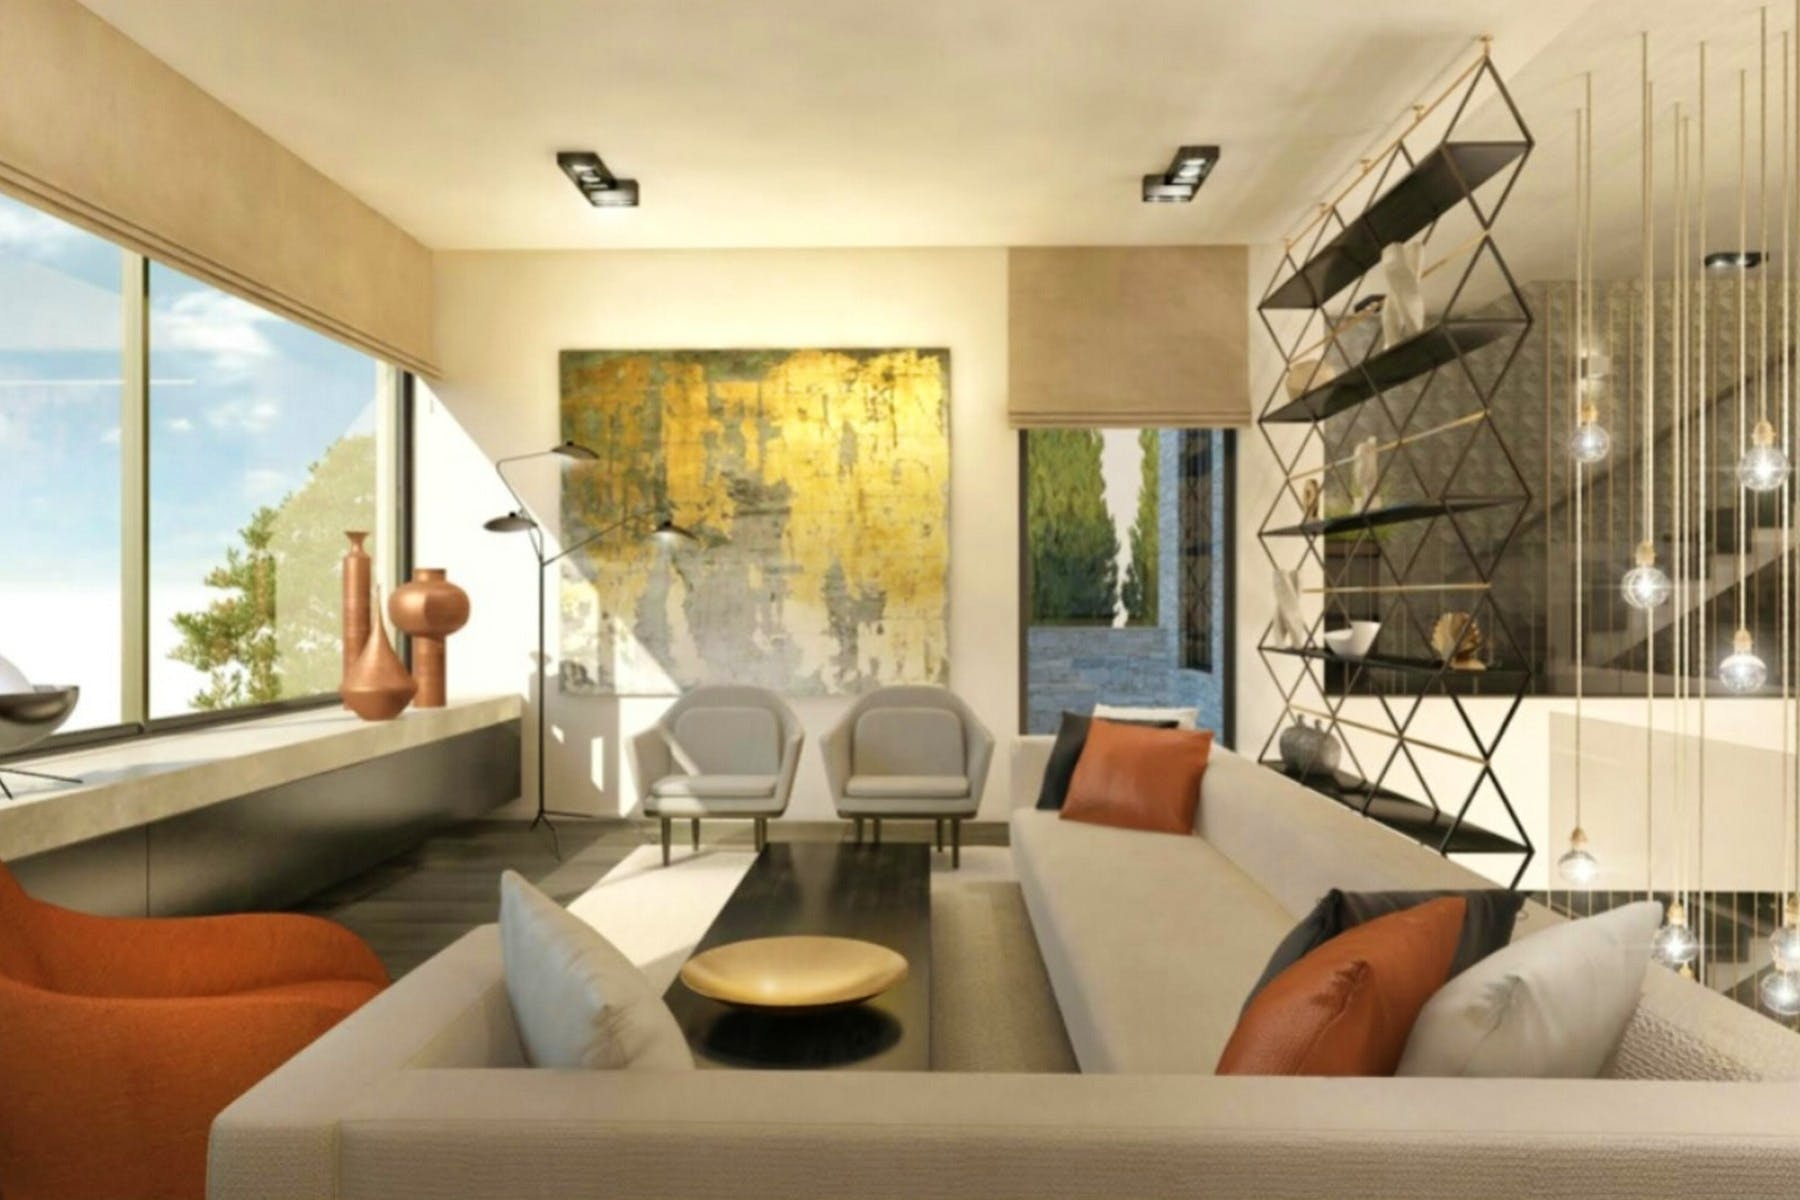 Contemporary interior design by renowned architect